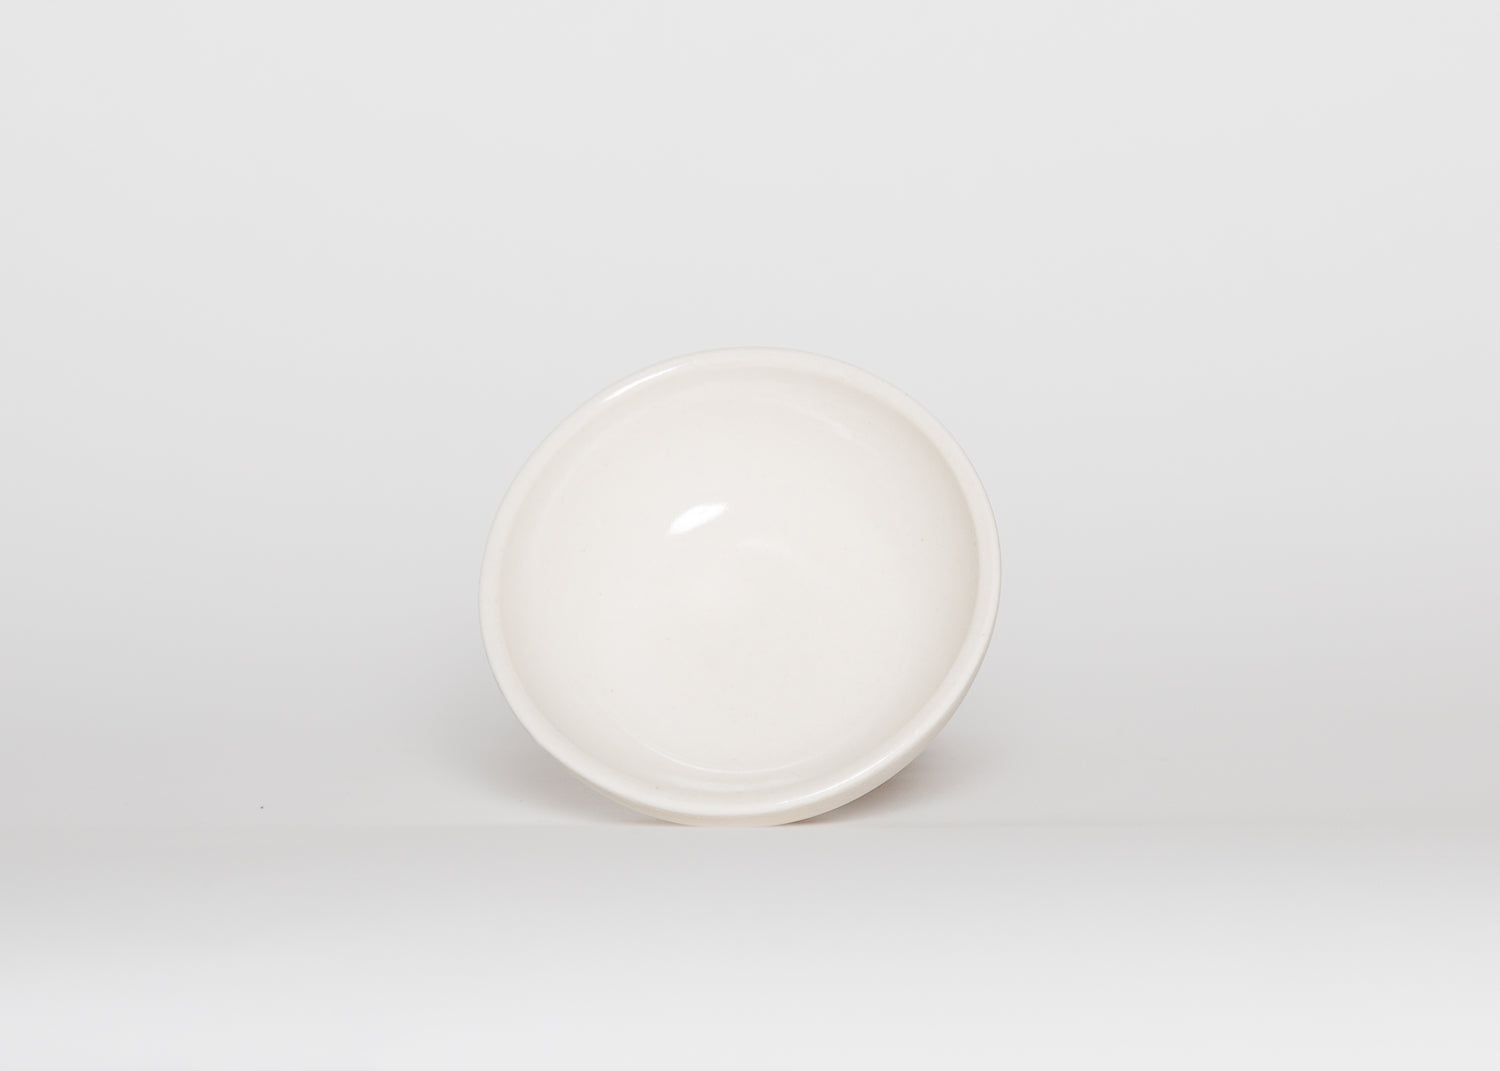 Barter White Porcelain Sharing Bowl 3""